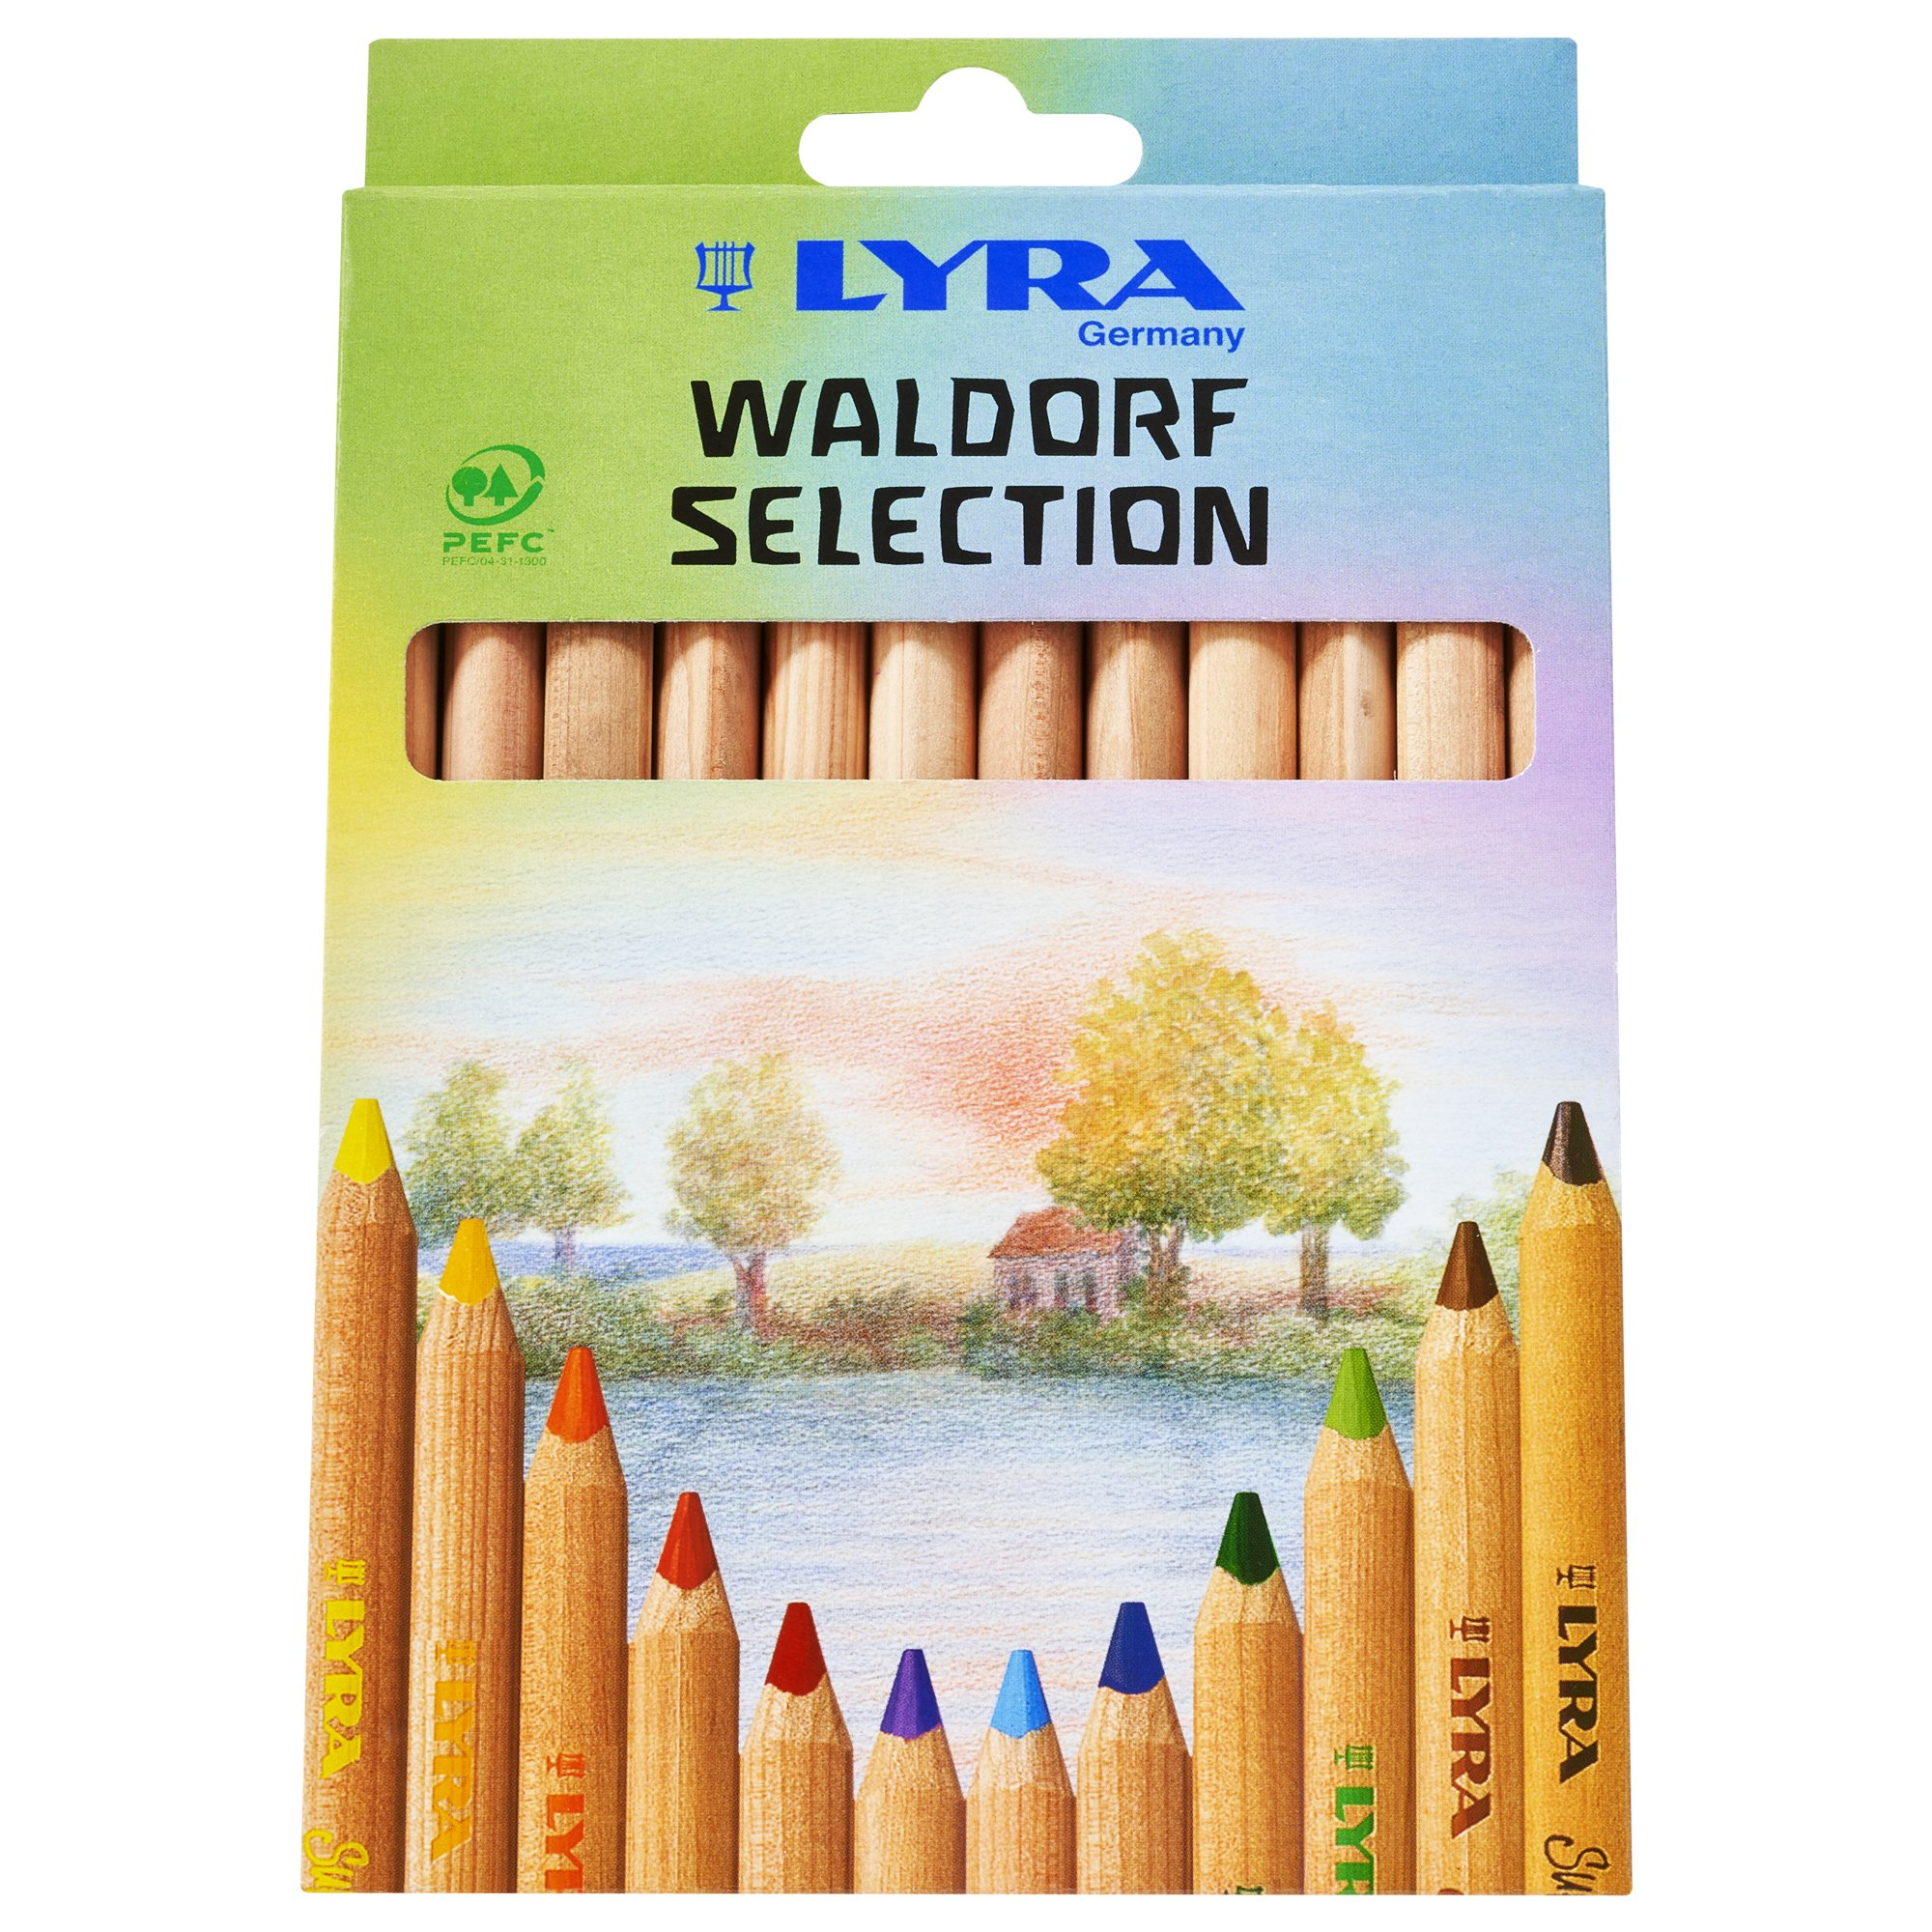 LYRA Waldorf Selection Giant Triangular Colored Pencils, Unlacquered, 6.25 Millimeter Cores, Assorted Colors, 12 Count (3711121)